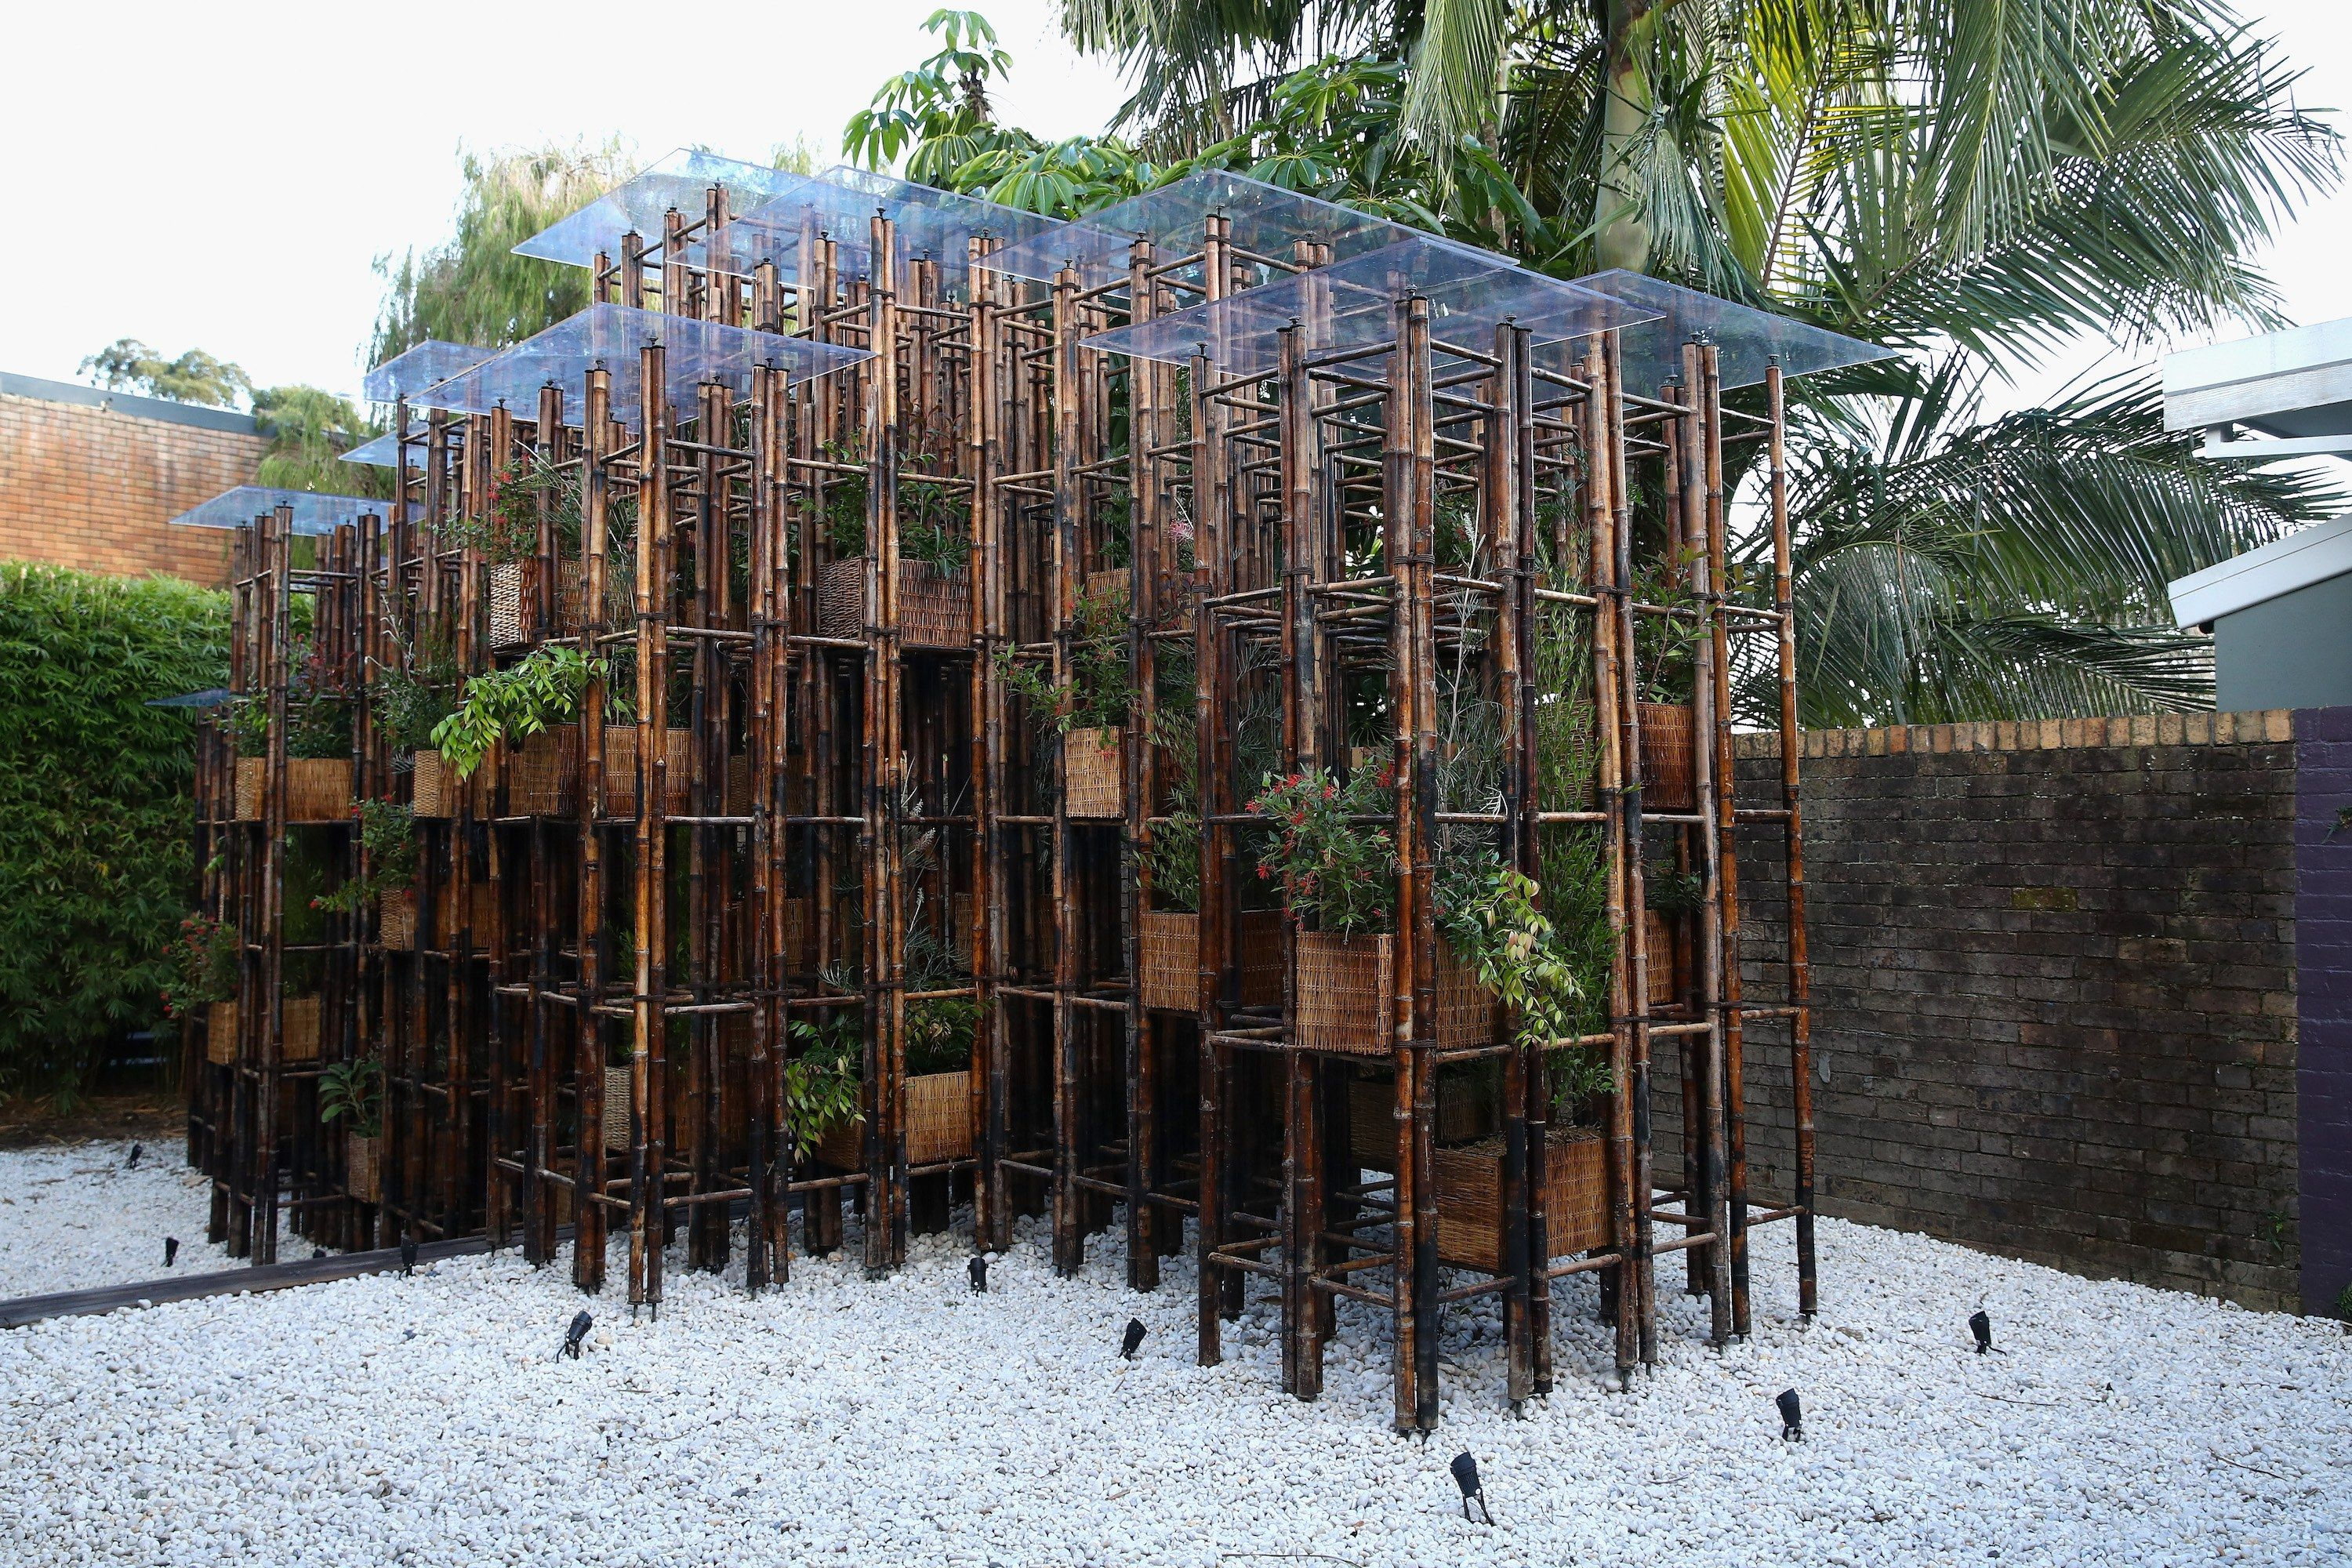 7 Of The Most Beautiful Bamboo Structures In The World